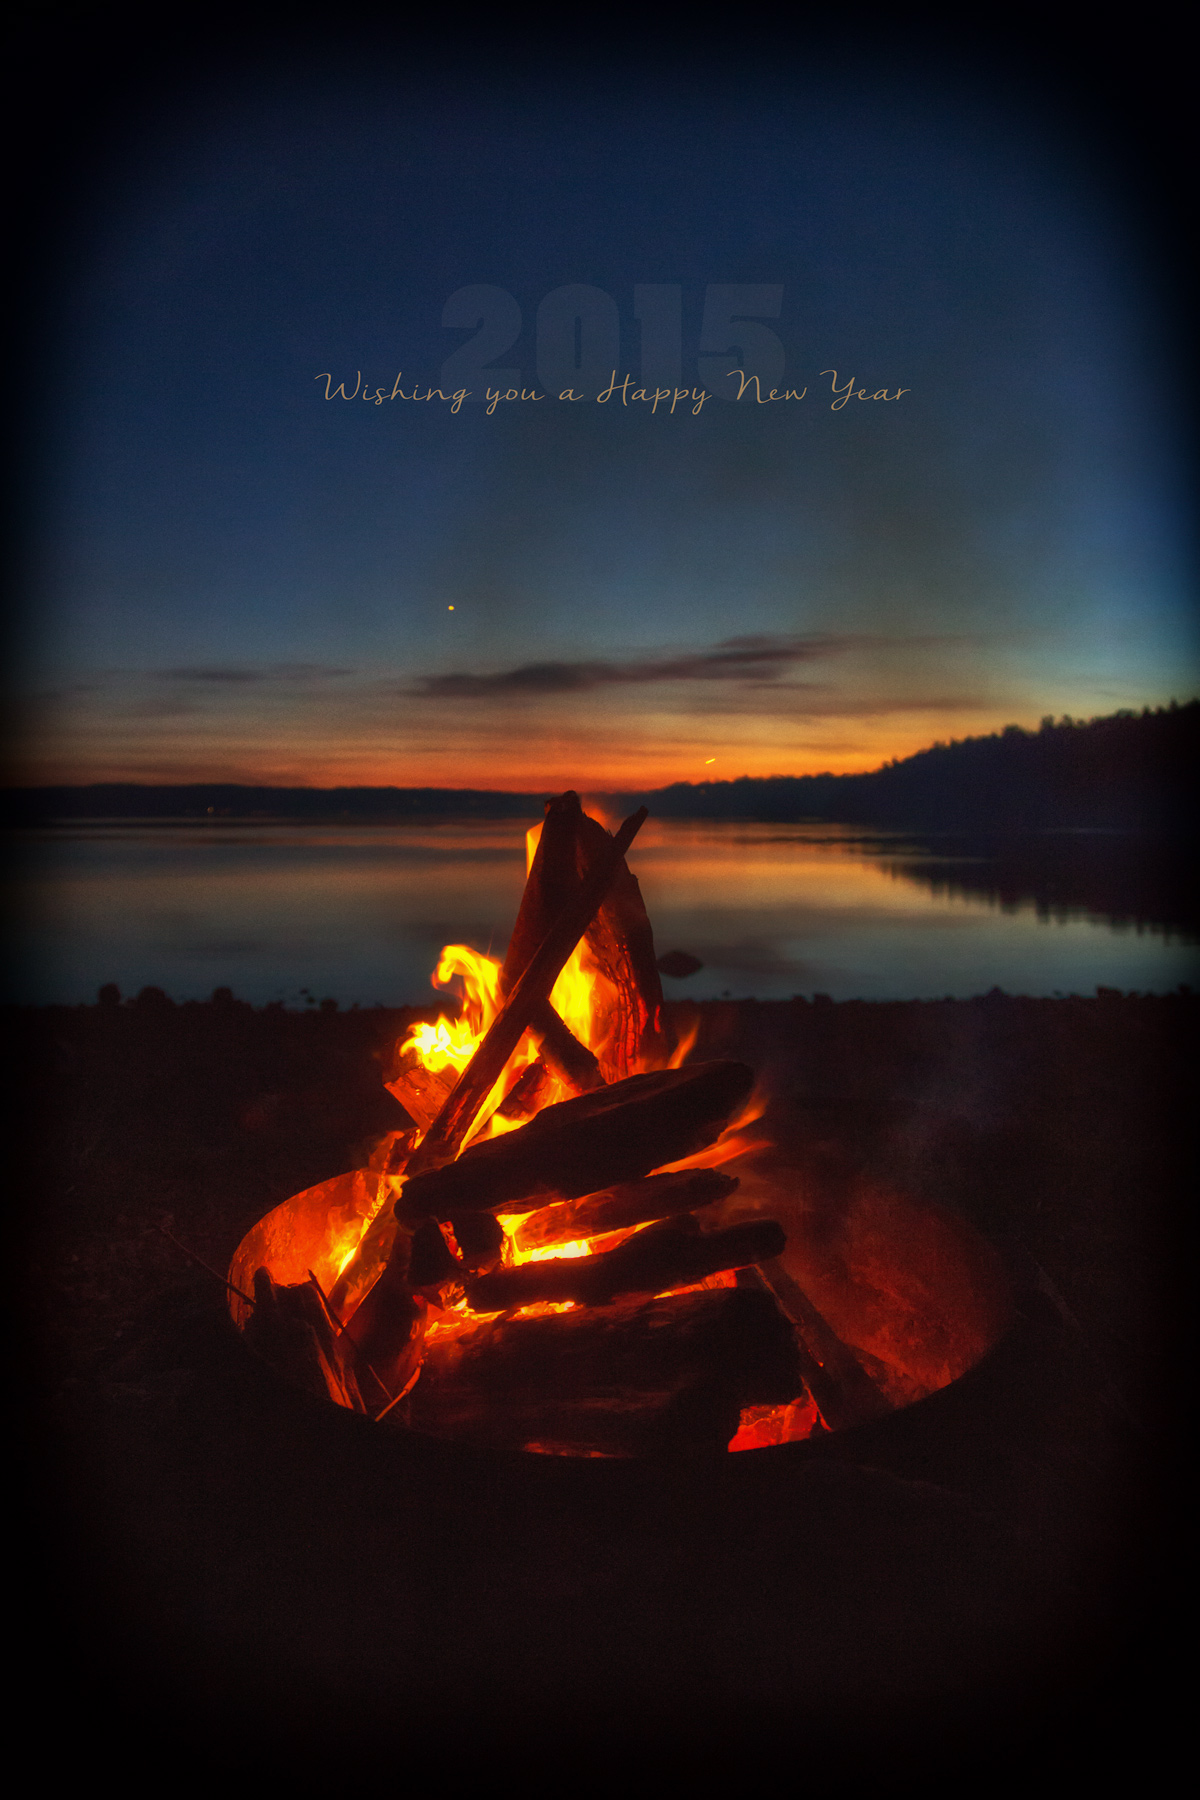 Happy New Year 2015 via J5MM.com // Airstream Road Trip